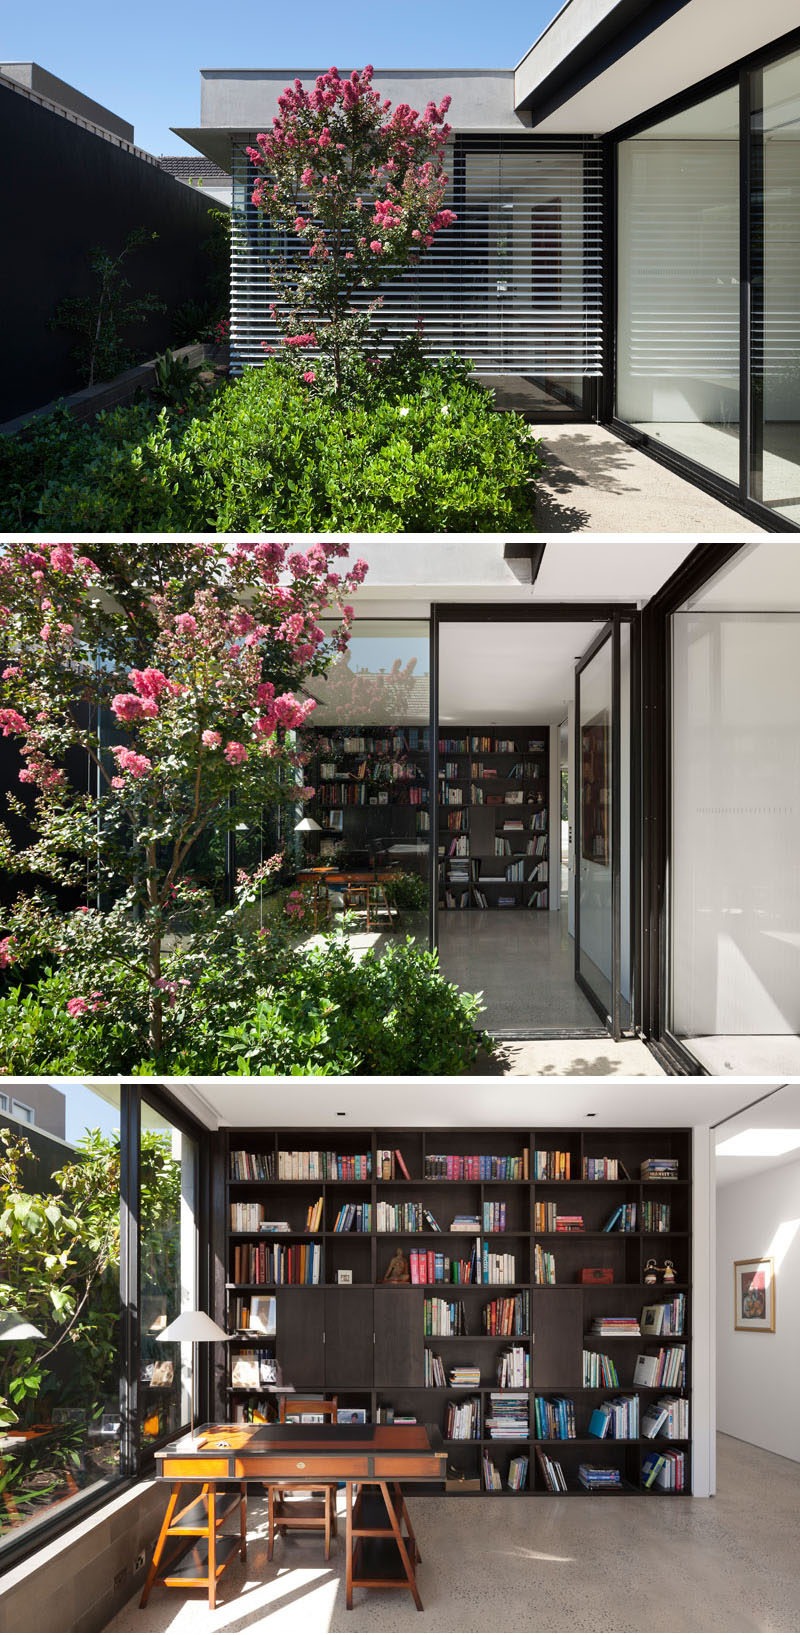 Somewhat hidden behind the plants in this modern courtyard is a door to an office. Inside, there's floor-to-ceiling wood shelving and a desk sits by the window. #HomeOffice #Shelving